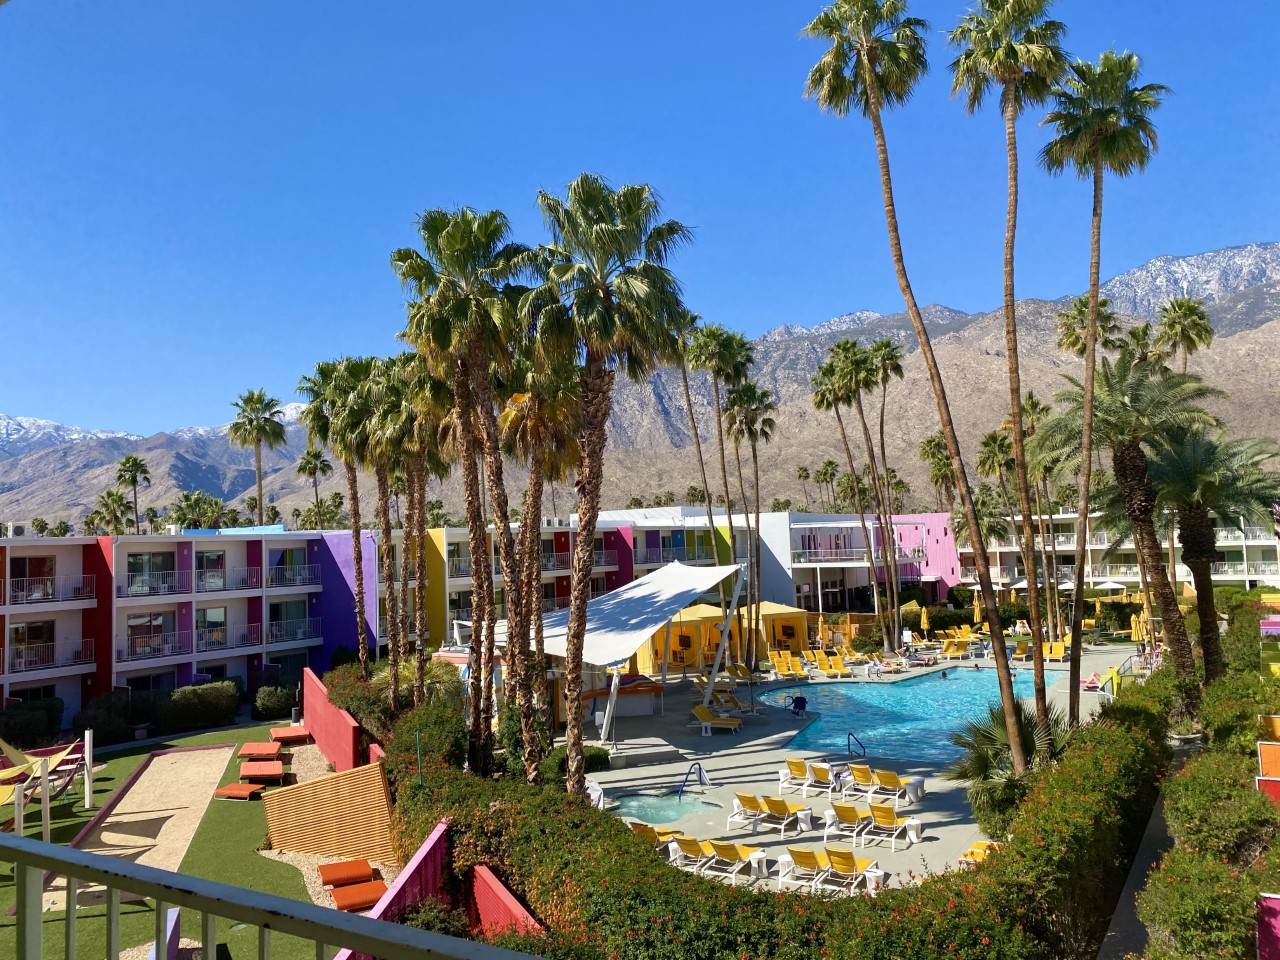 Jessica's Palm Springs Travel Guide